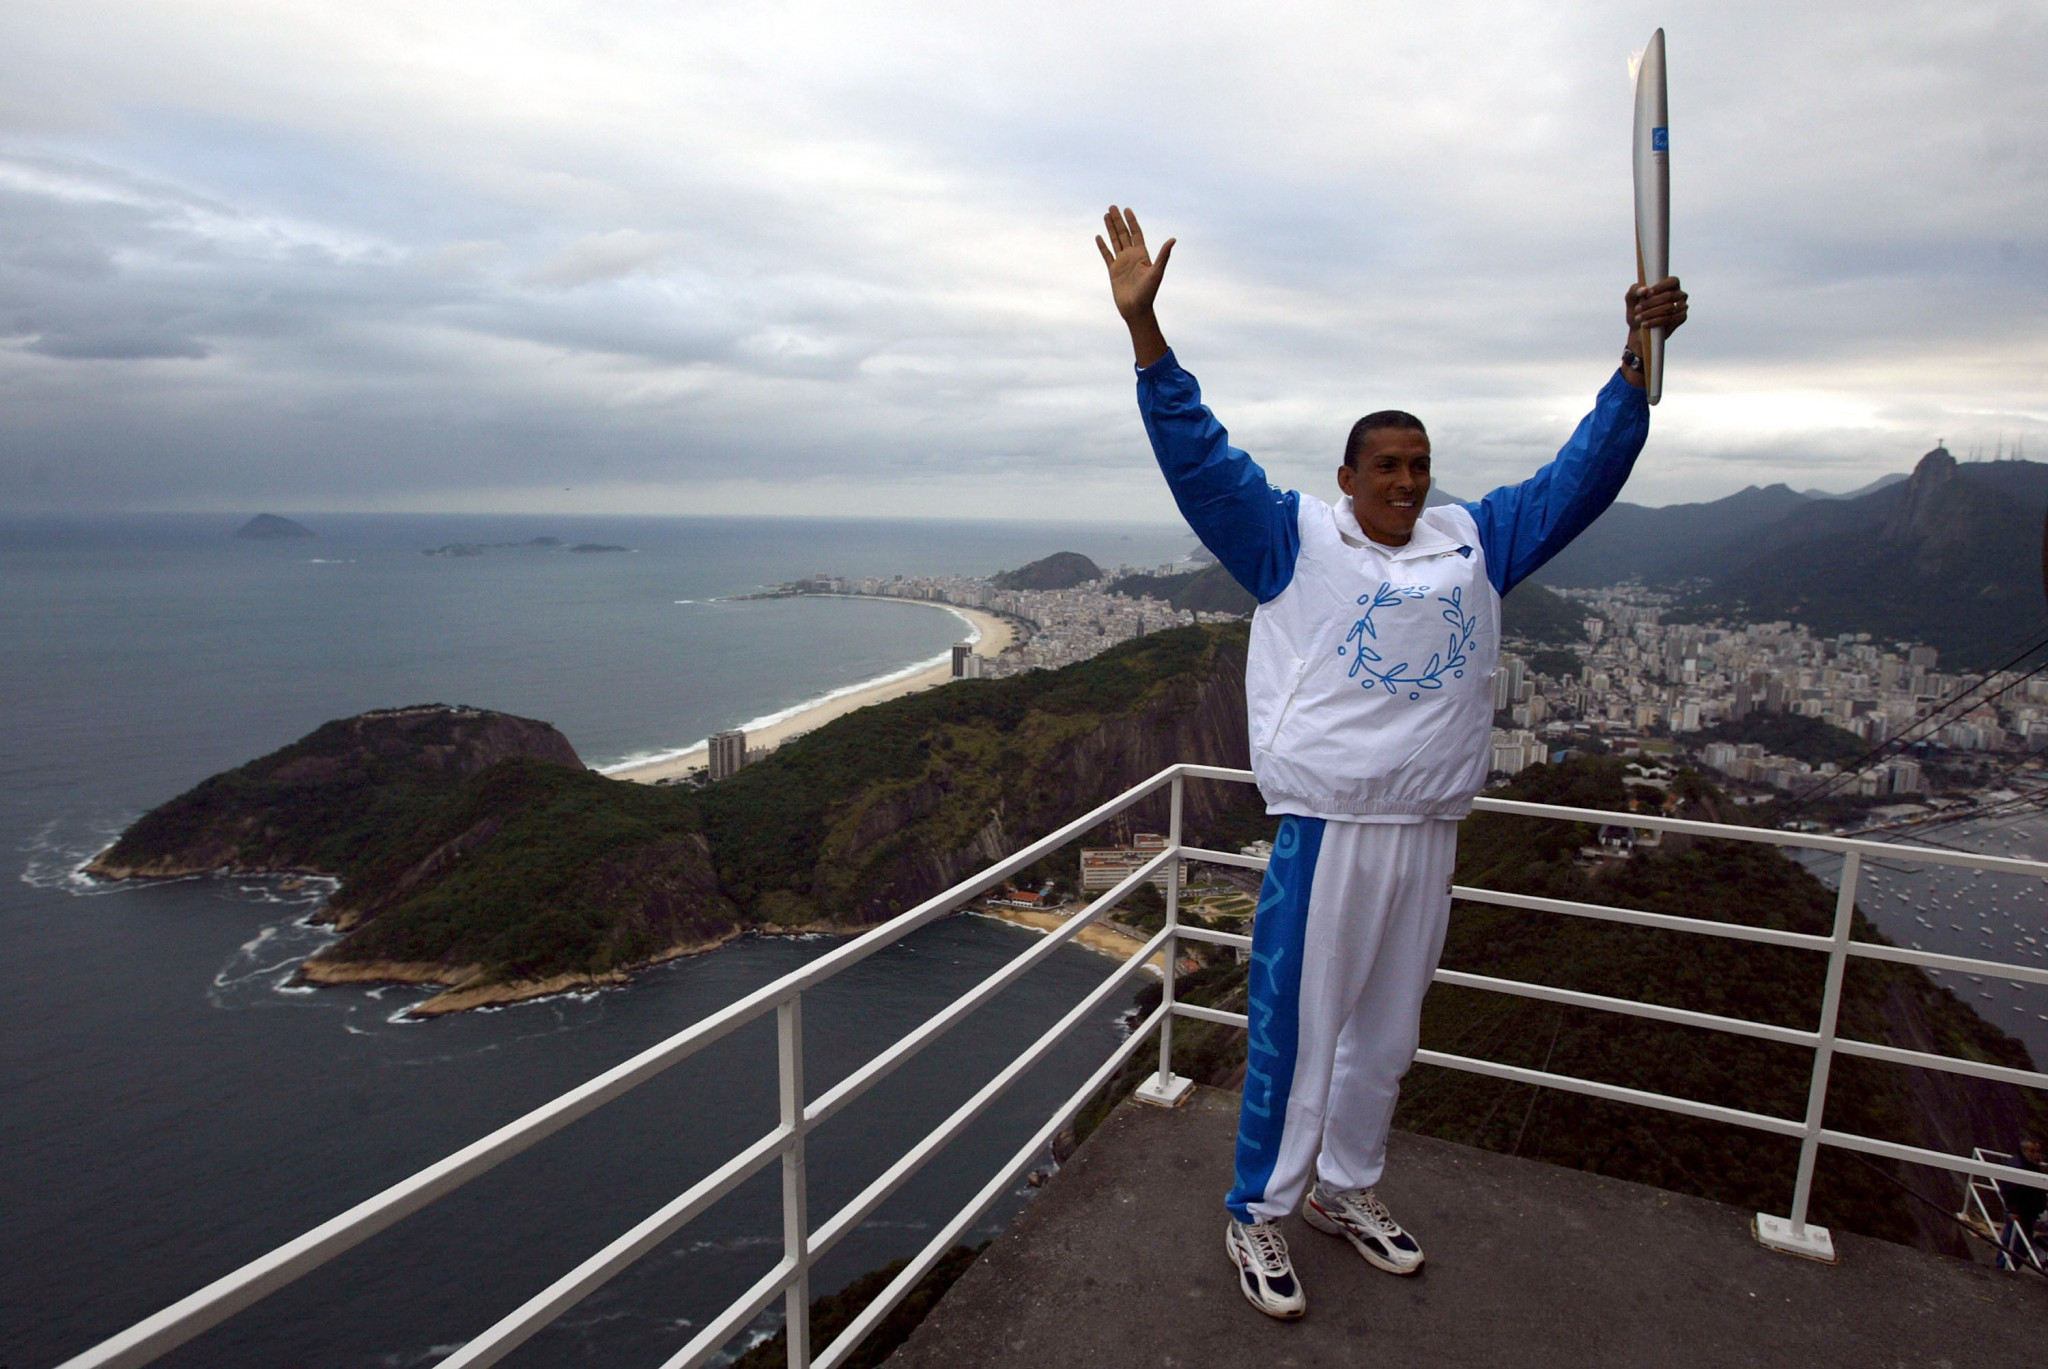 Joaquin Cruz emerged from the system in Brazil to win Olympic gold ©Getty Images